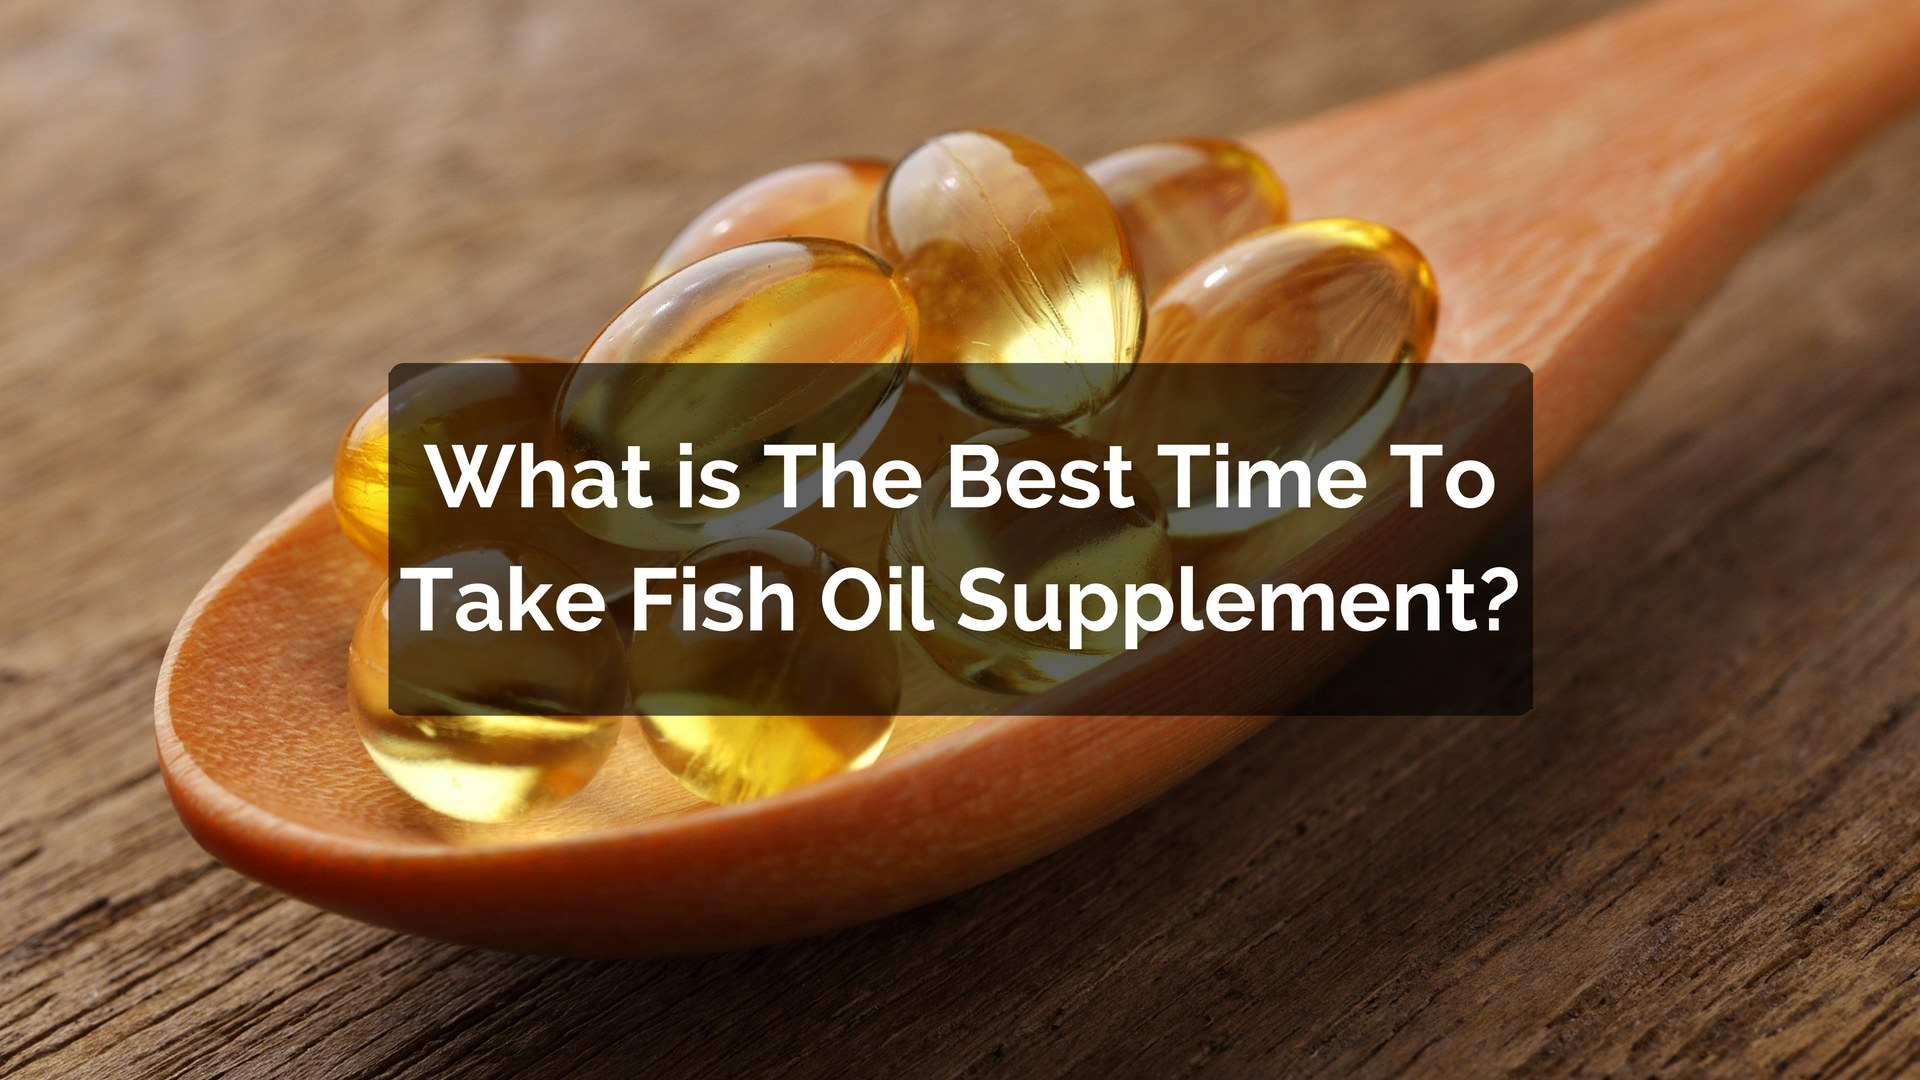 What is the best time to take fish oil for Fish oil supplement side effects